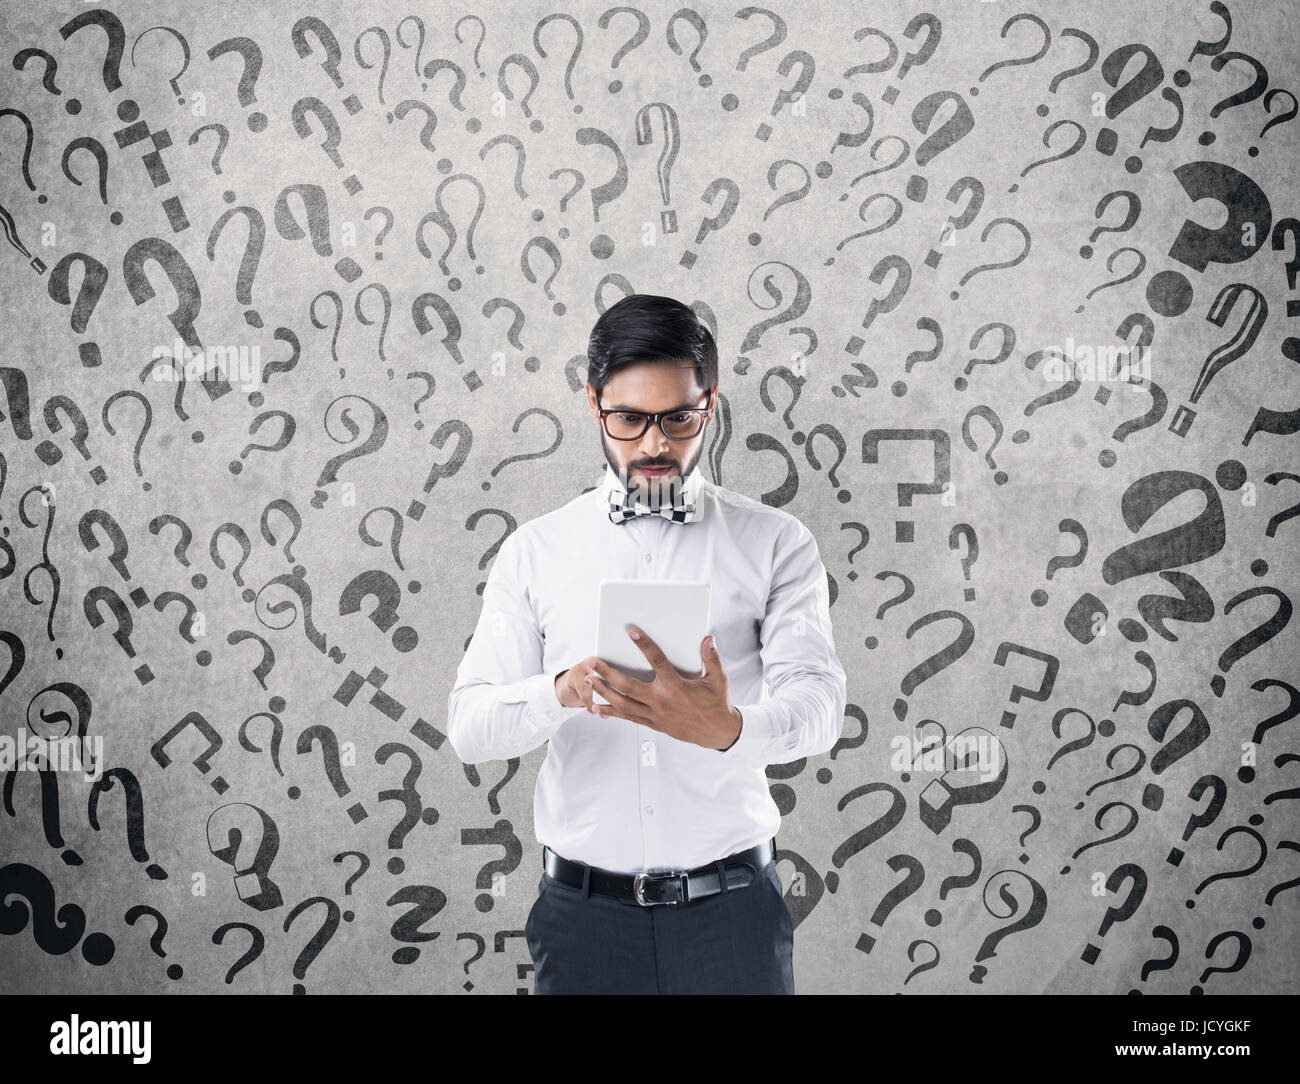 Businessman trying to solve the problems - Stock Image